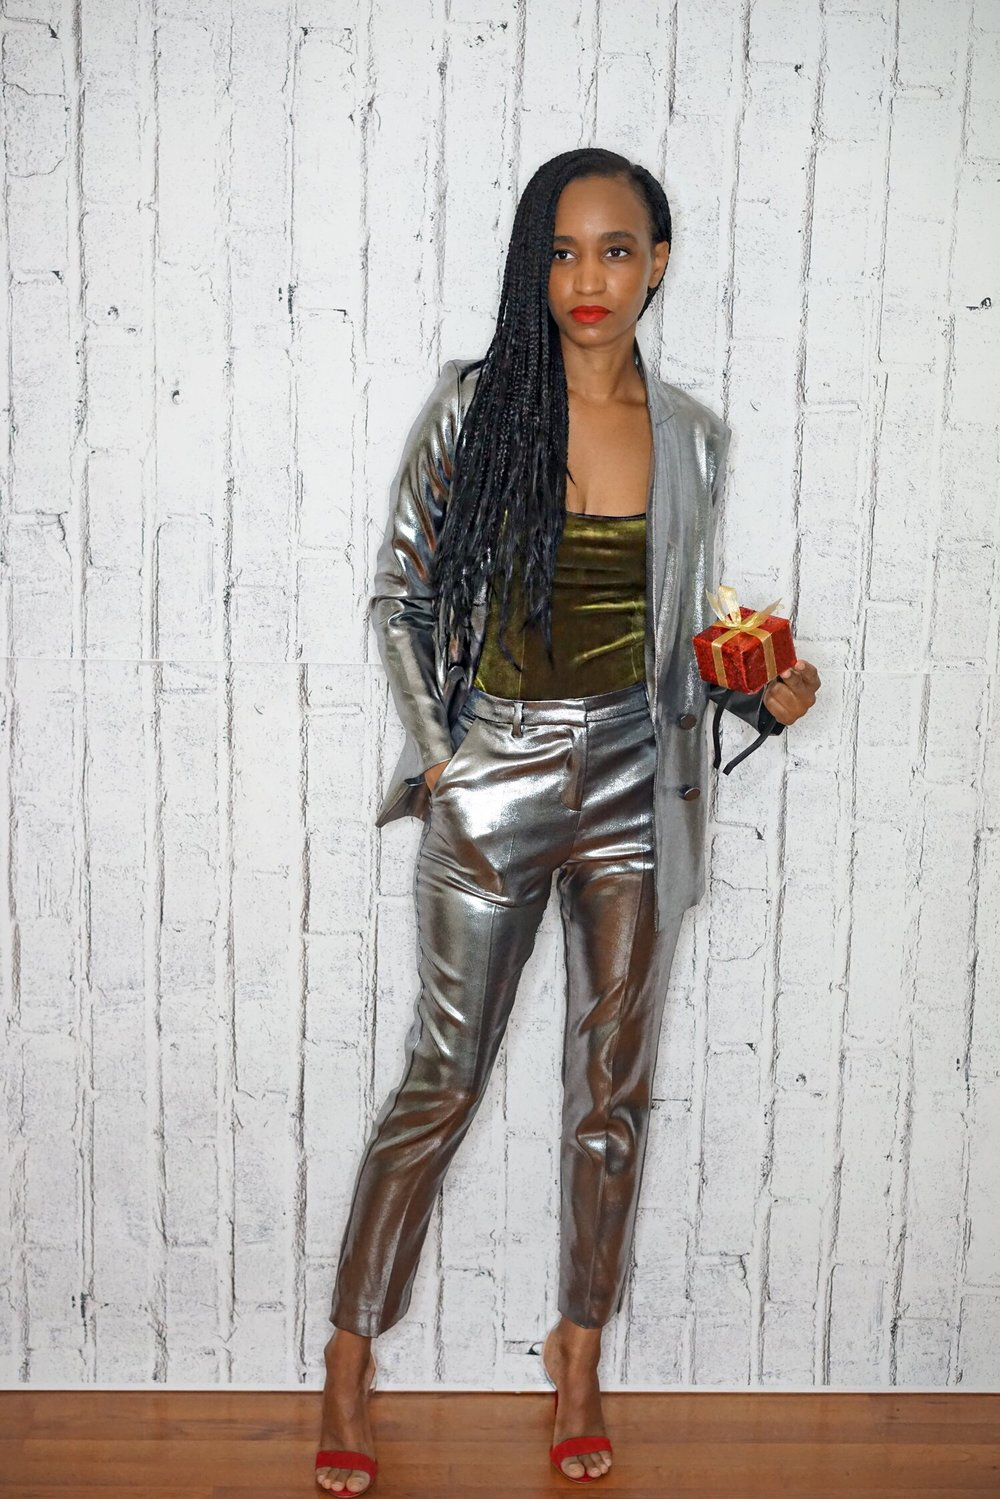 christine_the_style_affaire_bcbgmaxmara_steve_madden_shoes_topshop_suit_blazer_pants_trousers_fenty_beauty_red_lipcolor_by_rihanna_christmas_colors_bodysuit_joy_metallic_holidays.jpg